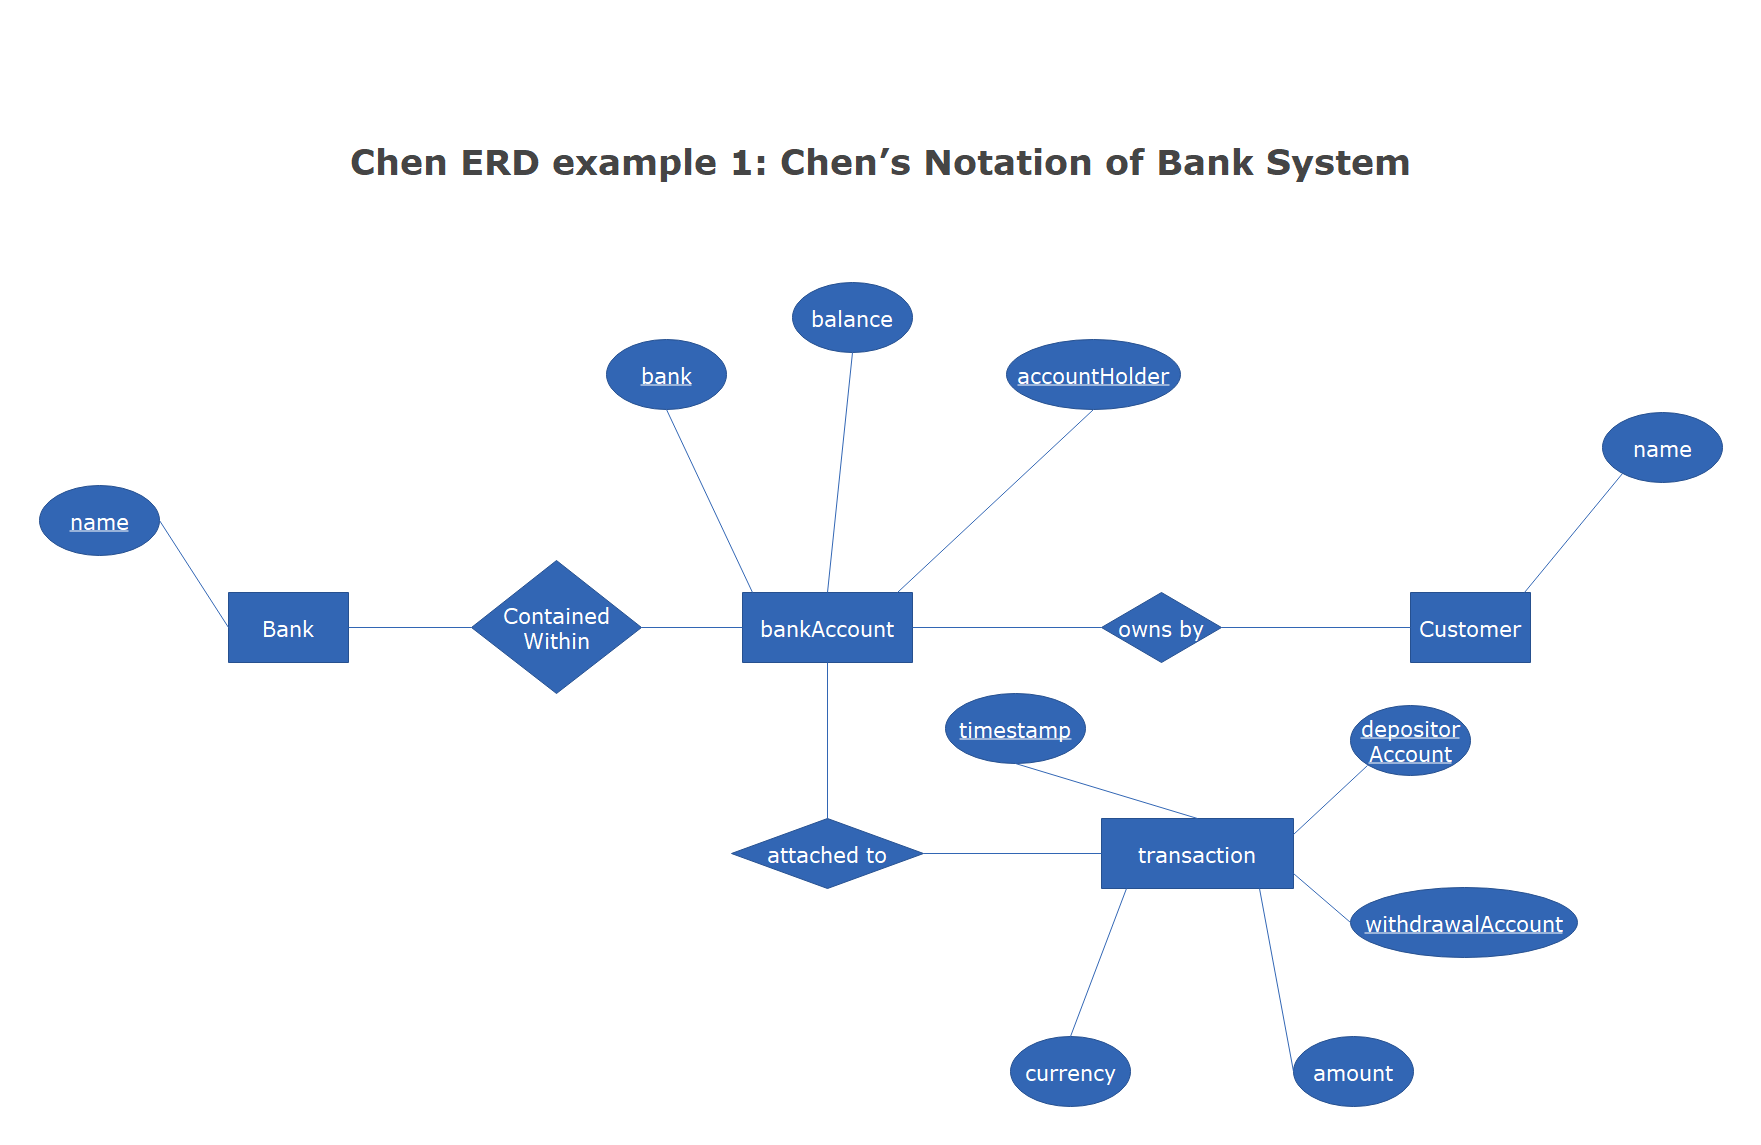 Chen's Notation of Bank System